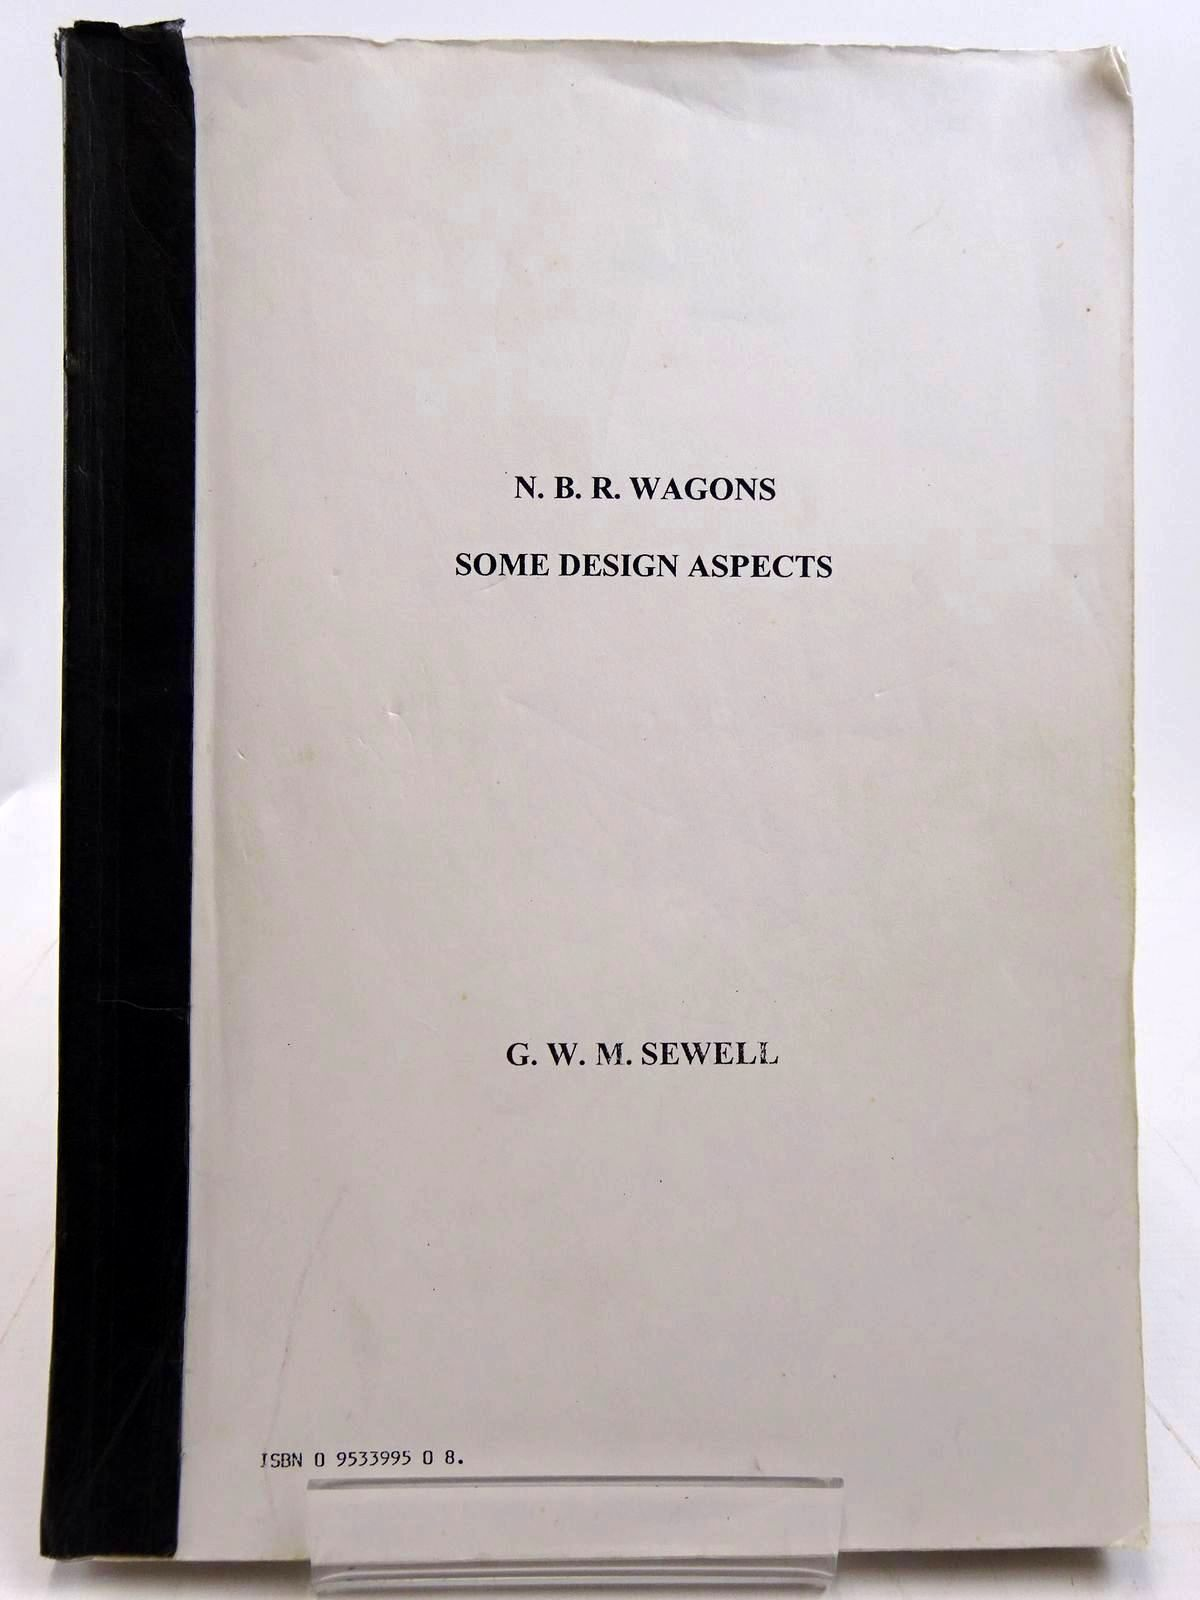 Photo of N.B.R. WAGONS SOME ASPECT DESIGNS written by Sewell, G.W.M. published by G.W.M. Sewell (STOCK CODE: 2131391)  for sale by Stella & Rose's Books